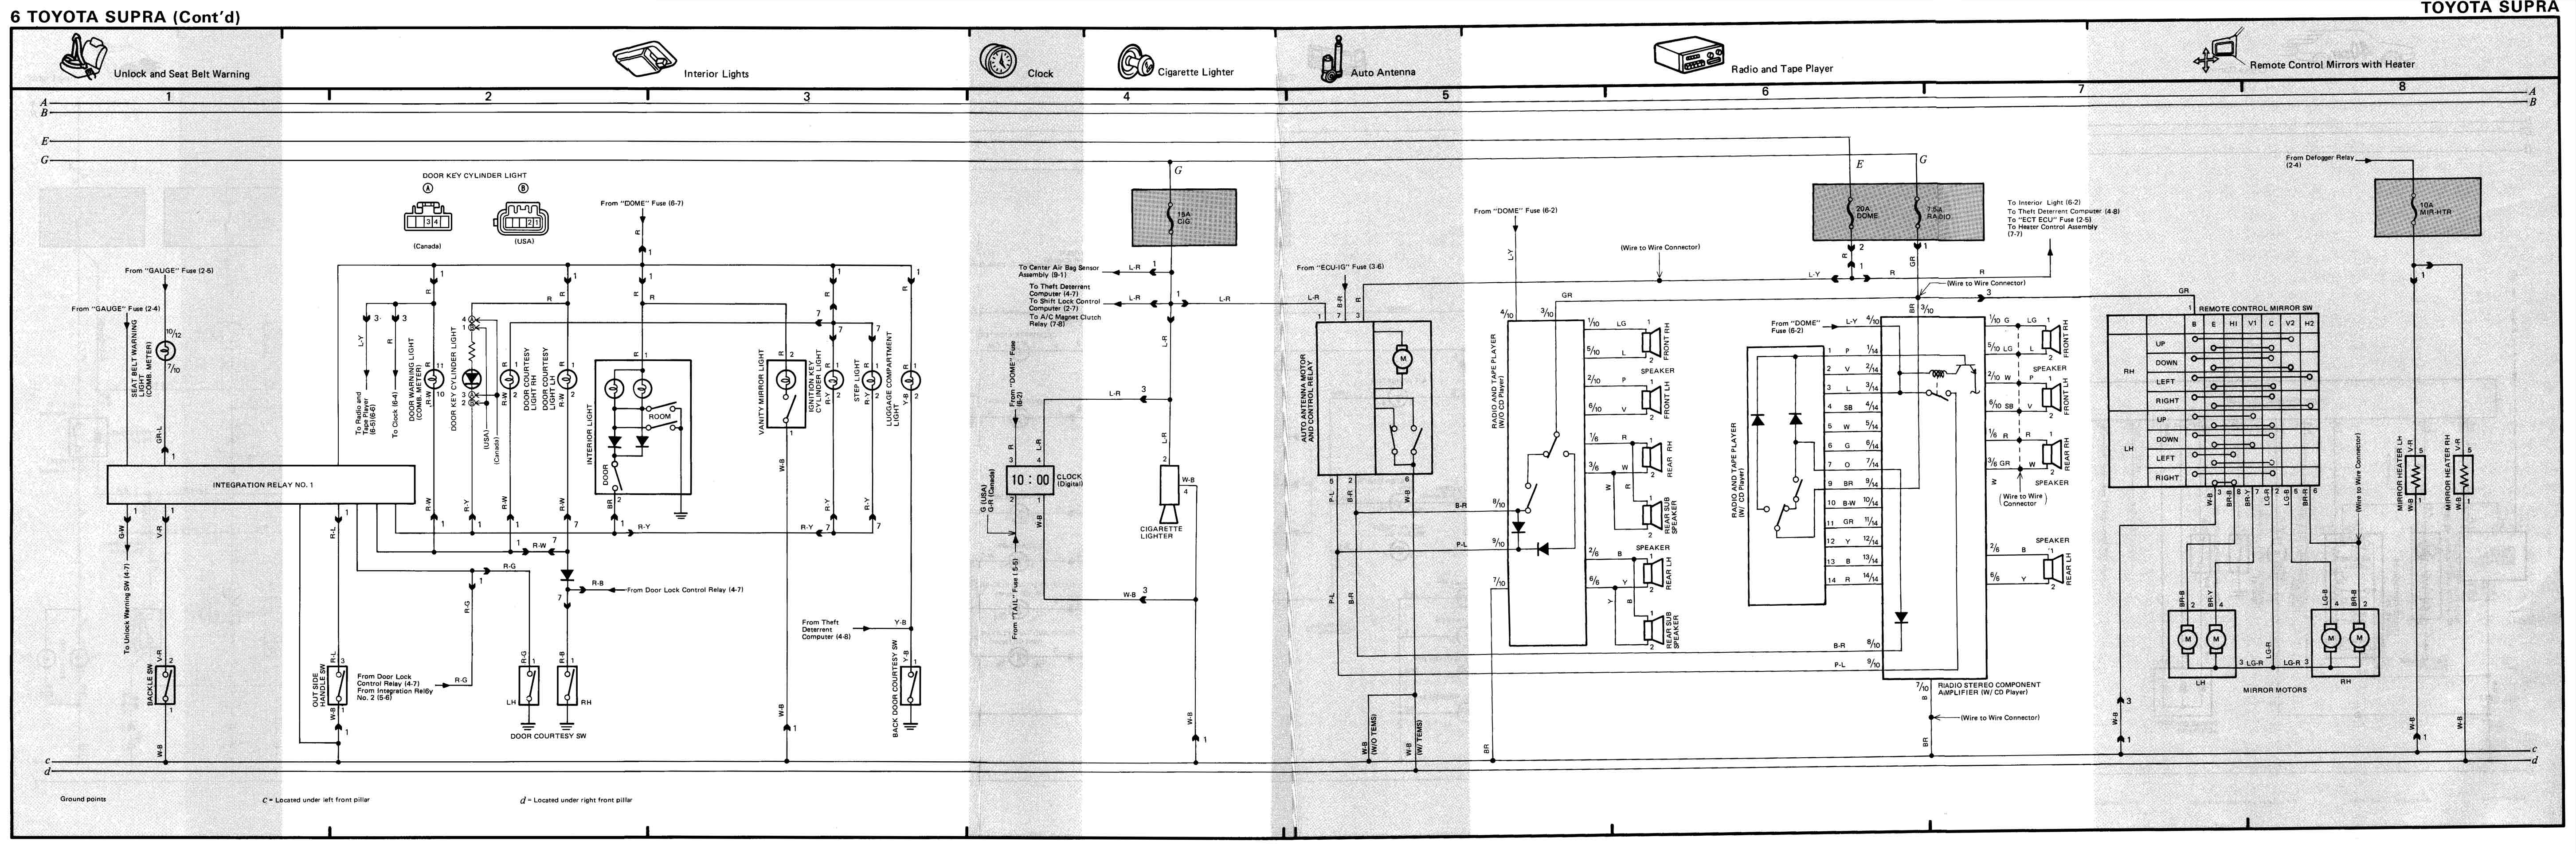 Flyout on Wiring Diagram 1996 Toyota Supra Turbo